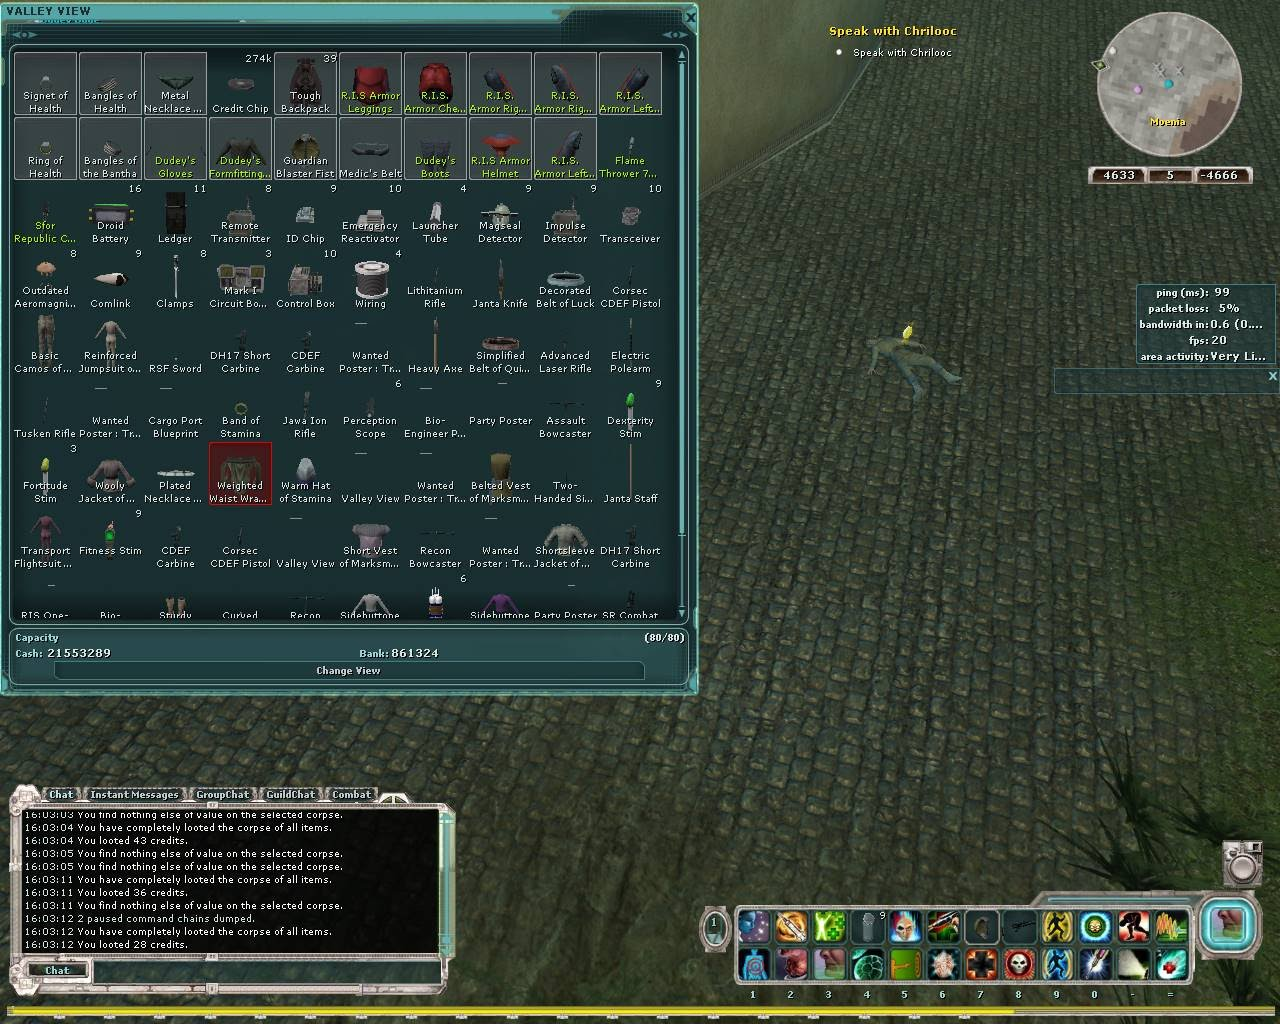 Star Wars Gaming: SWG guides Auto it to farm junk loot